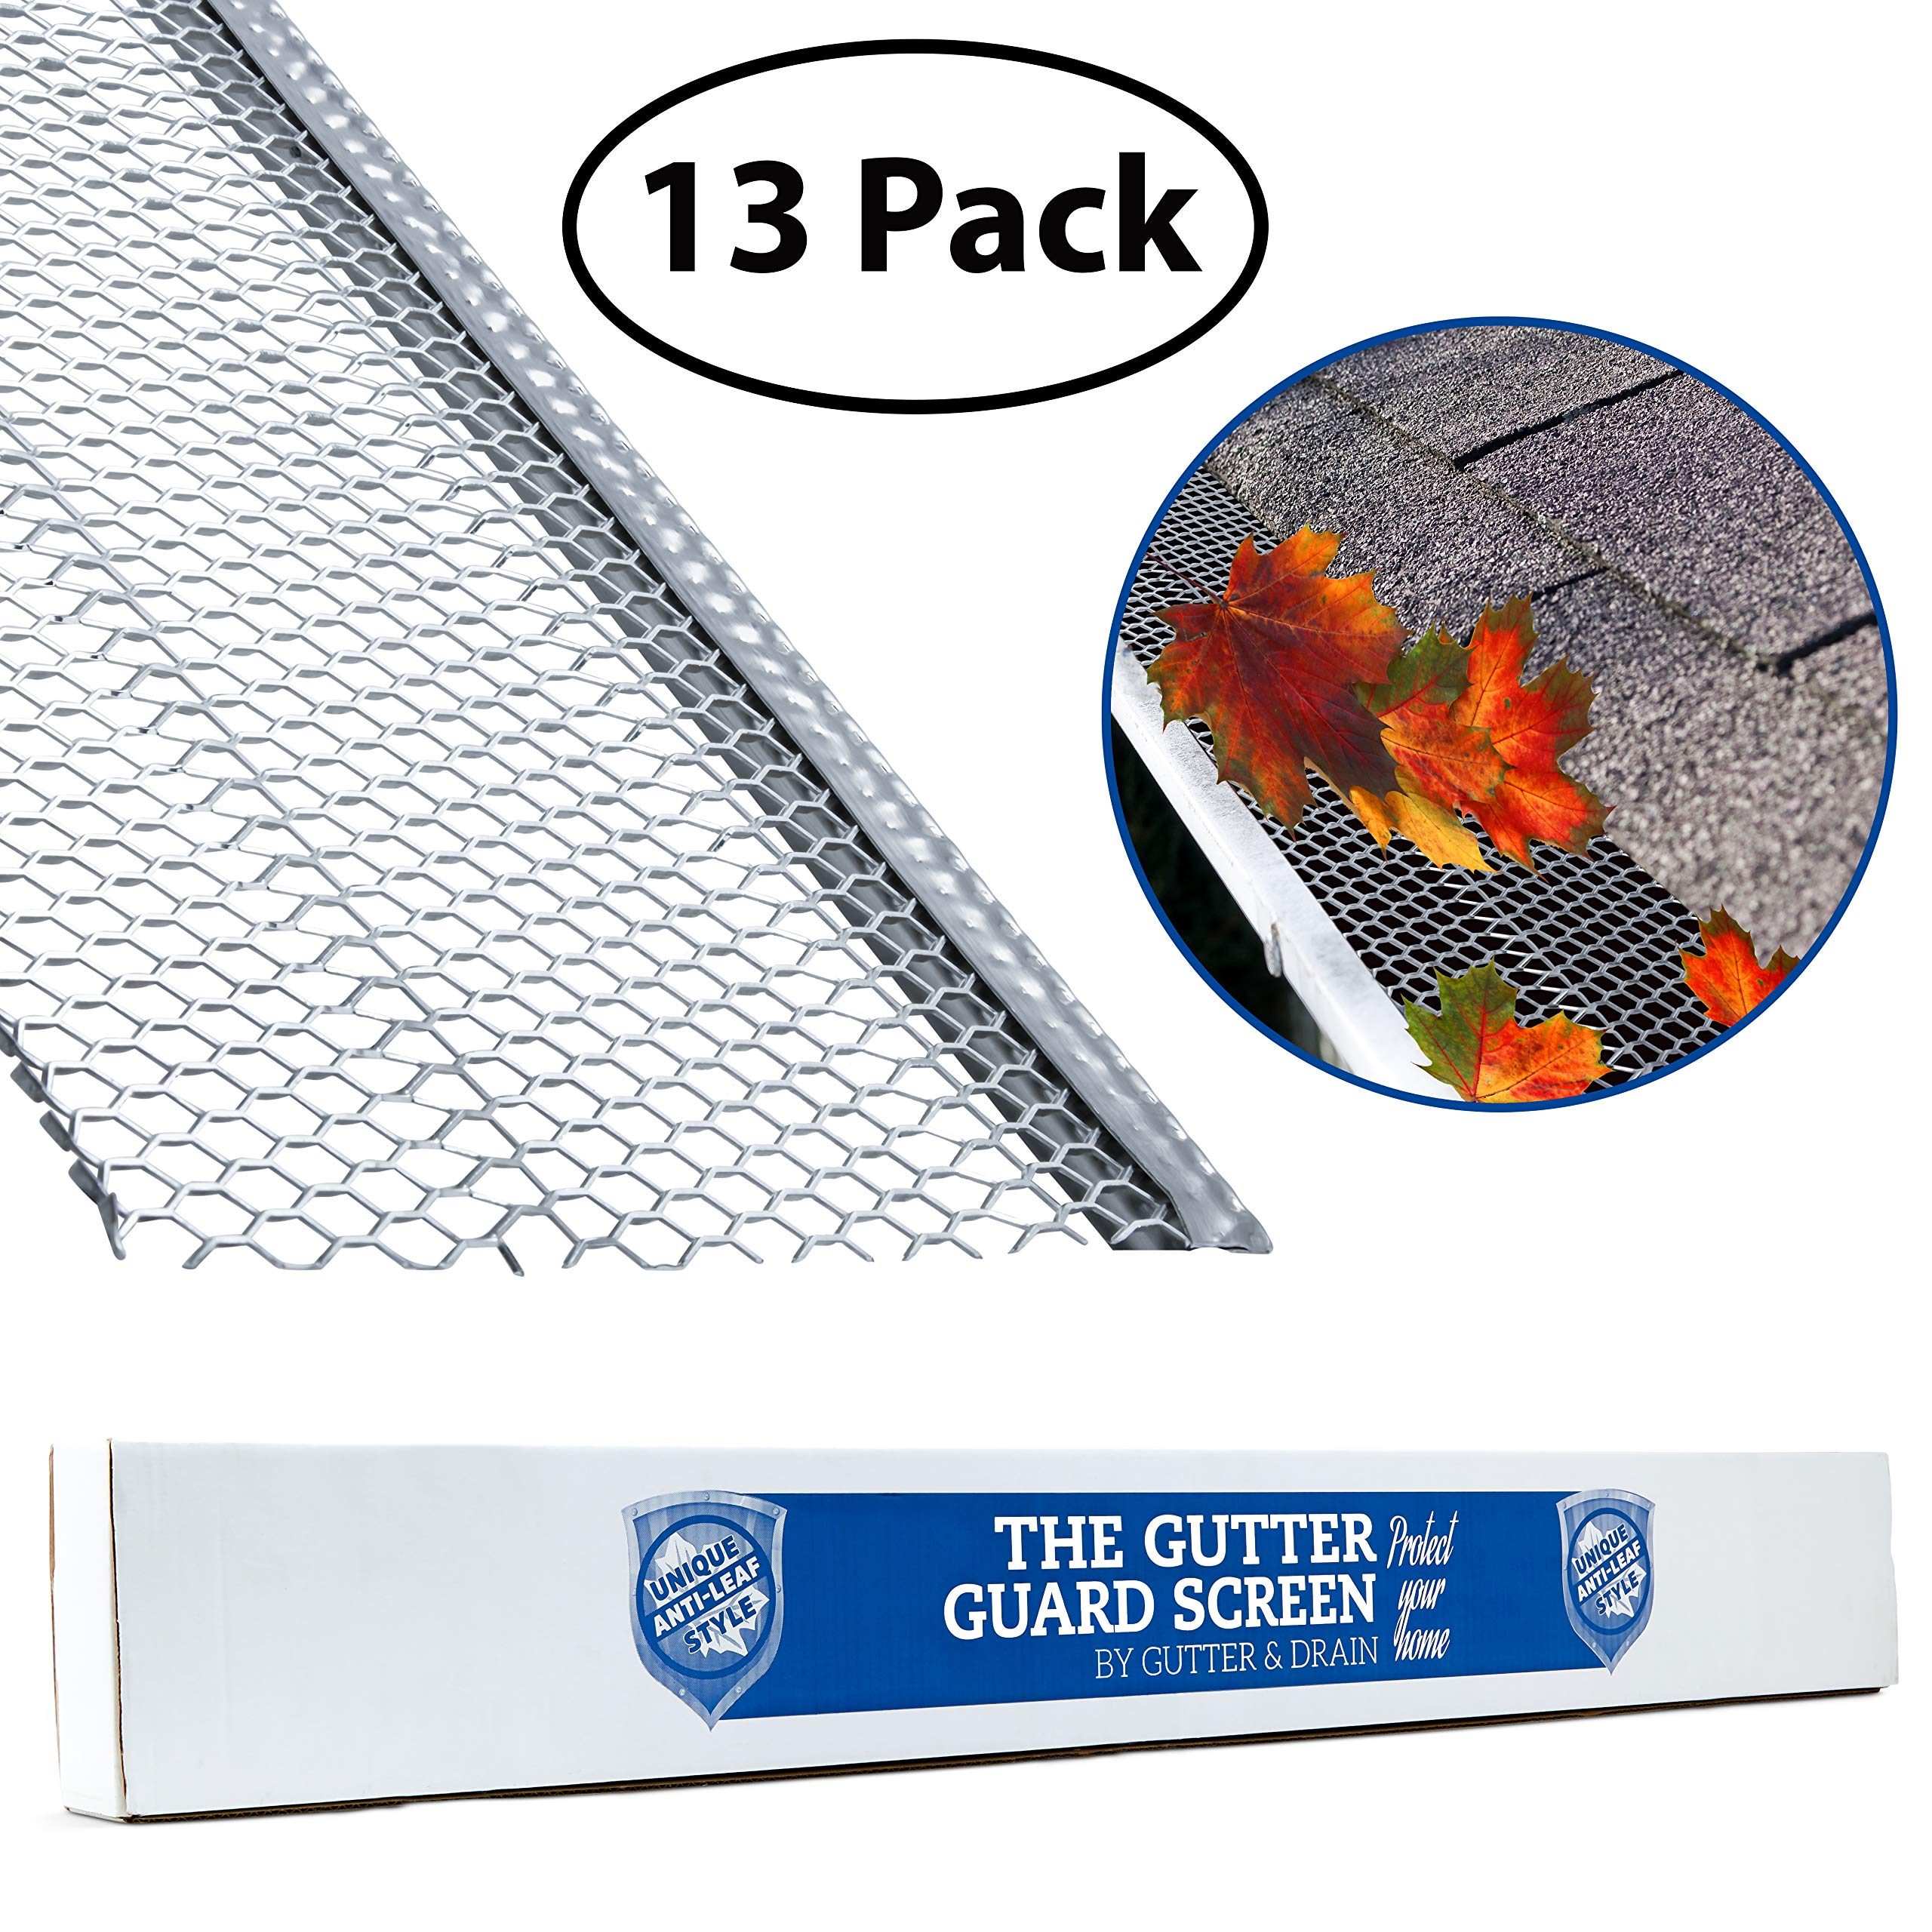 Ultimate Gutter Guard by Gutter&Drain |Ridged Mesh for Extra Protection | Premium Anti-Leaf Gutter Cover Prevents Clogged Downspouts | Easy DIY Installation & Weatherproof Design | 5''(52FT) by Gutter & Drain